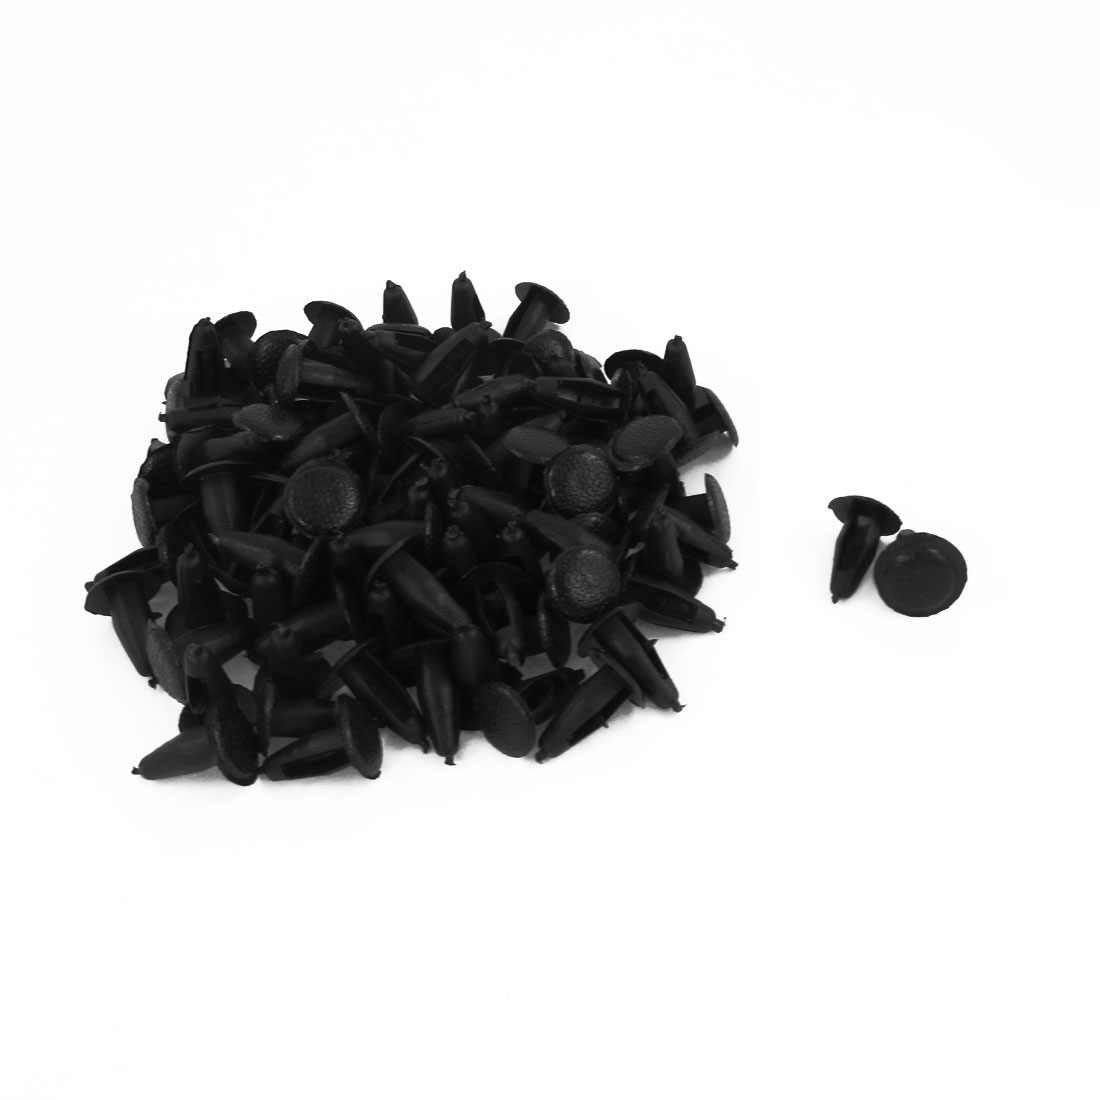 Vehicle Plastic Fastener Rivet Clips 12mm Dia Head Black 100pcs